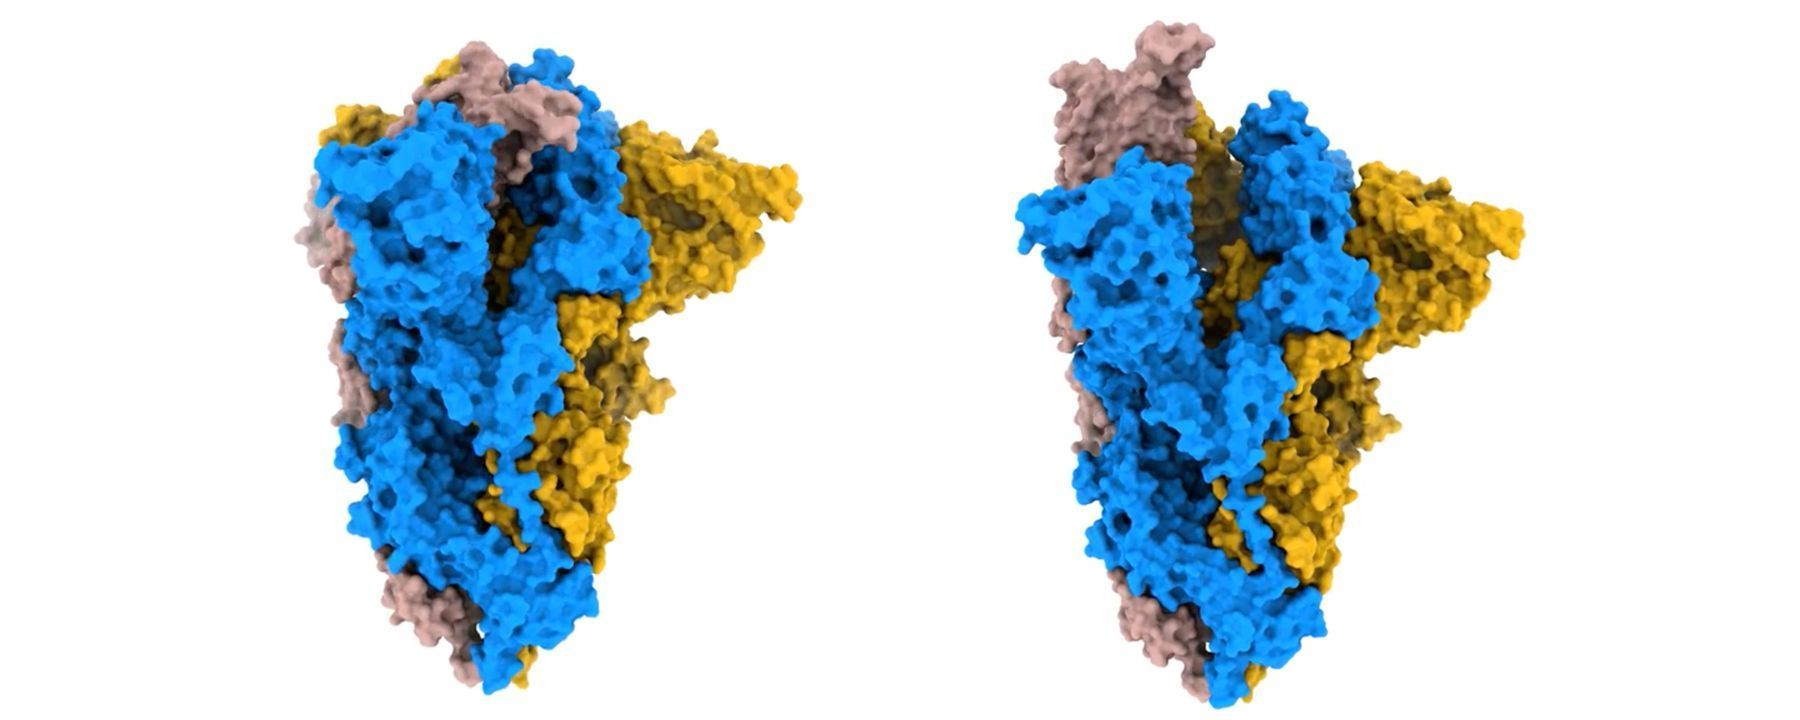 Spike Structure Gives Insight into SARS-CoV-2 Evolution